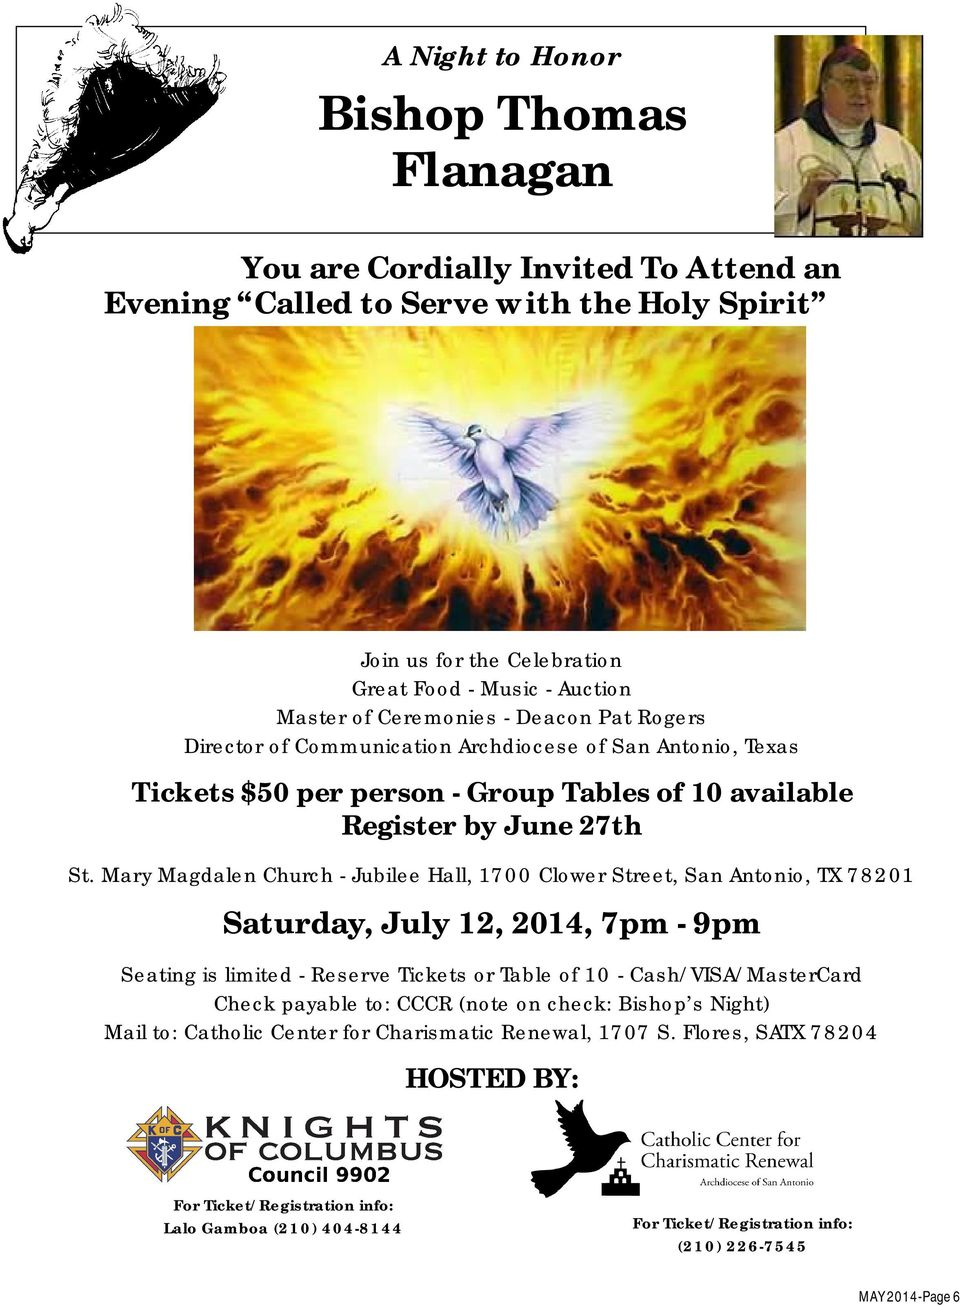 Mary Magdalen Church - Jubilee Hall, 1700 Clower Street, San Antonio, TX 78201 Saturday, July 12, 2014, 7pm - 9pm Seating is limited - Reserve Tickets or Table of 10 - Cash/VISA/MasterCard Check